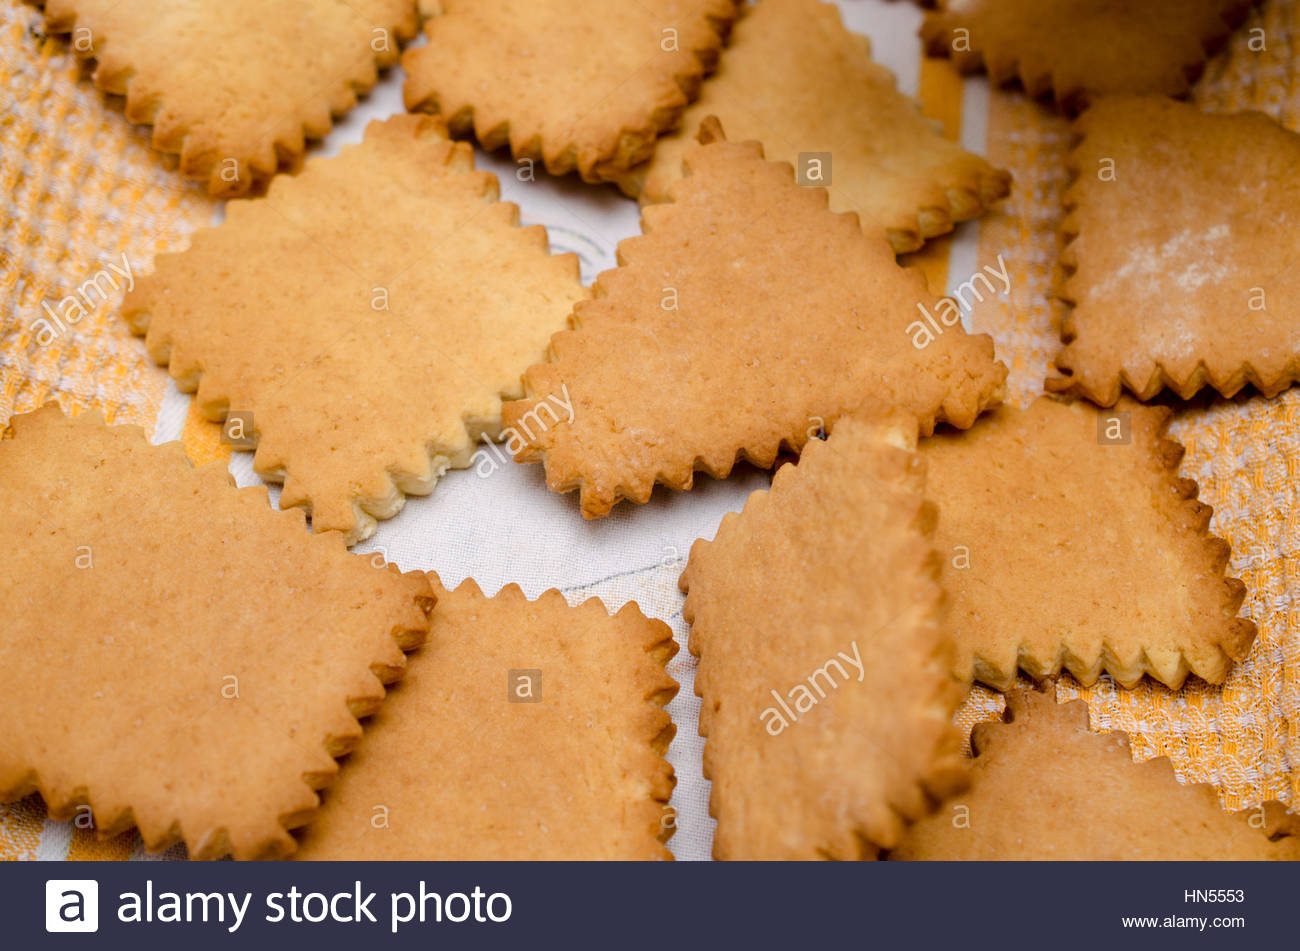 Cooking homemade cookies on rustic kitchen - Stock Image